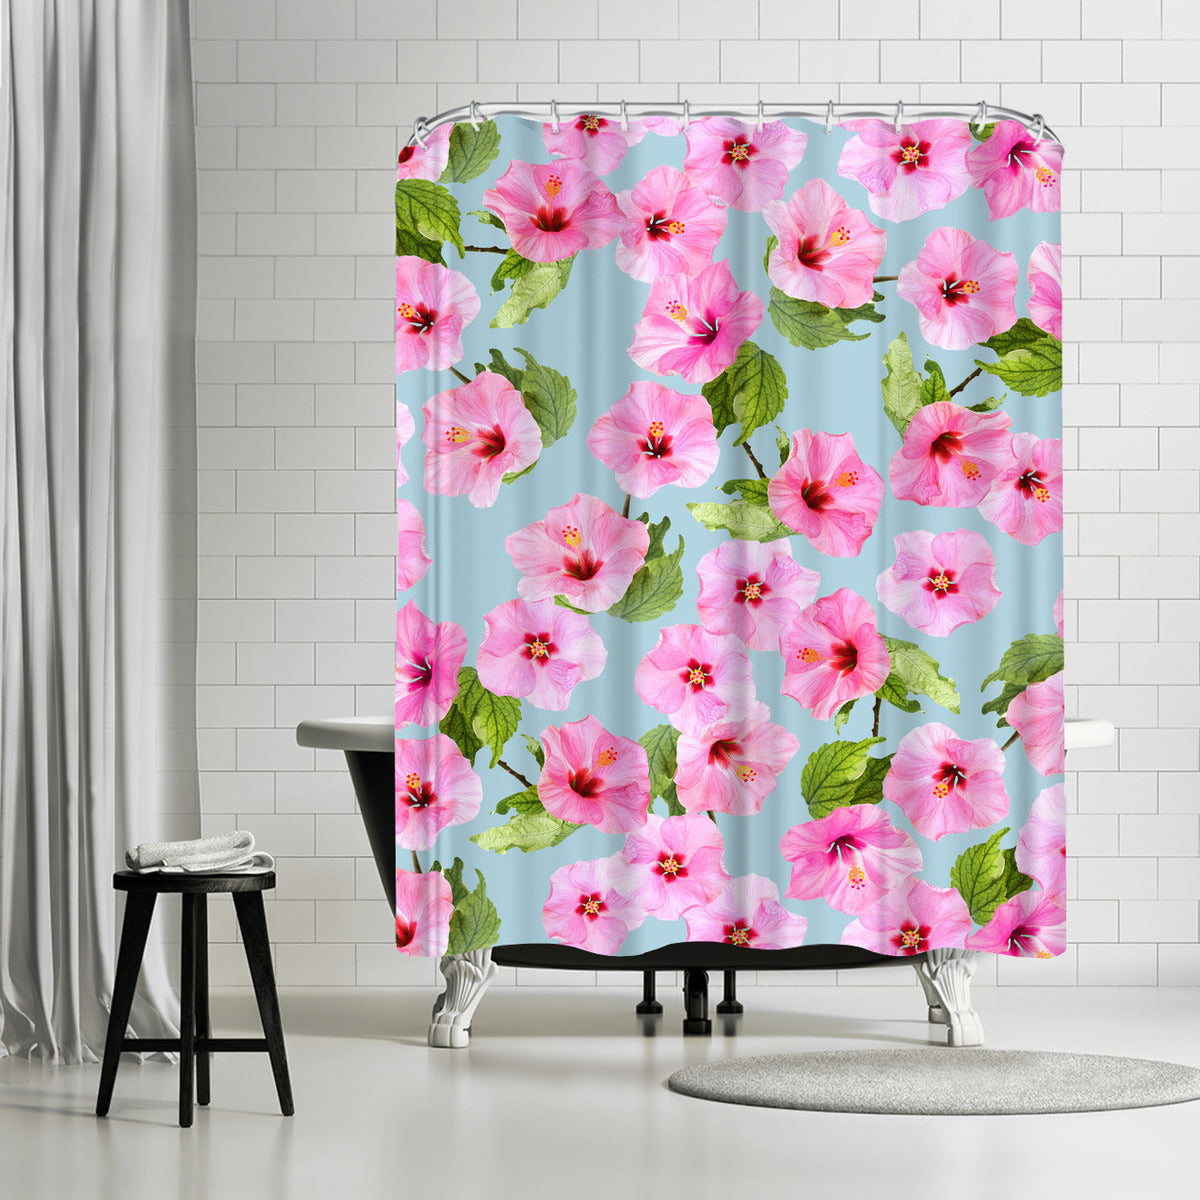 Ibiscus Dance by Emanuela Carratoni Shower Curtain -  - Americanflat